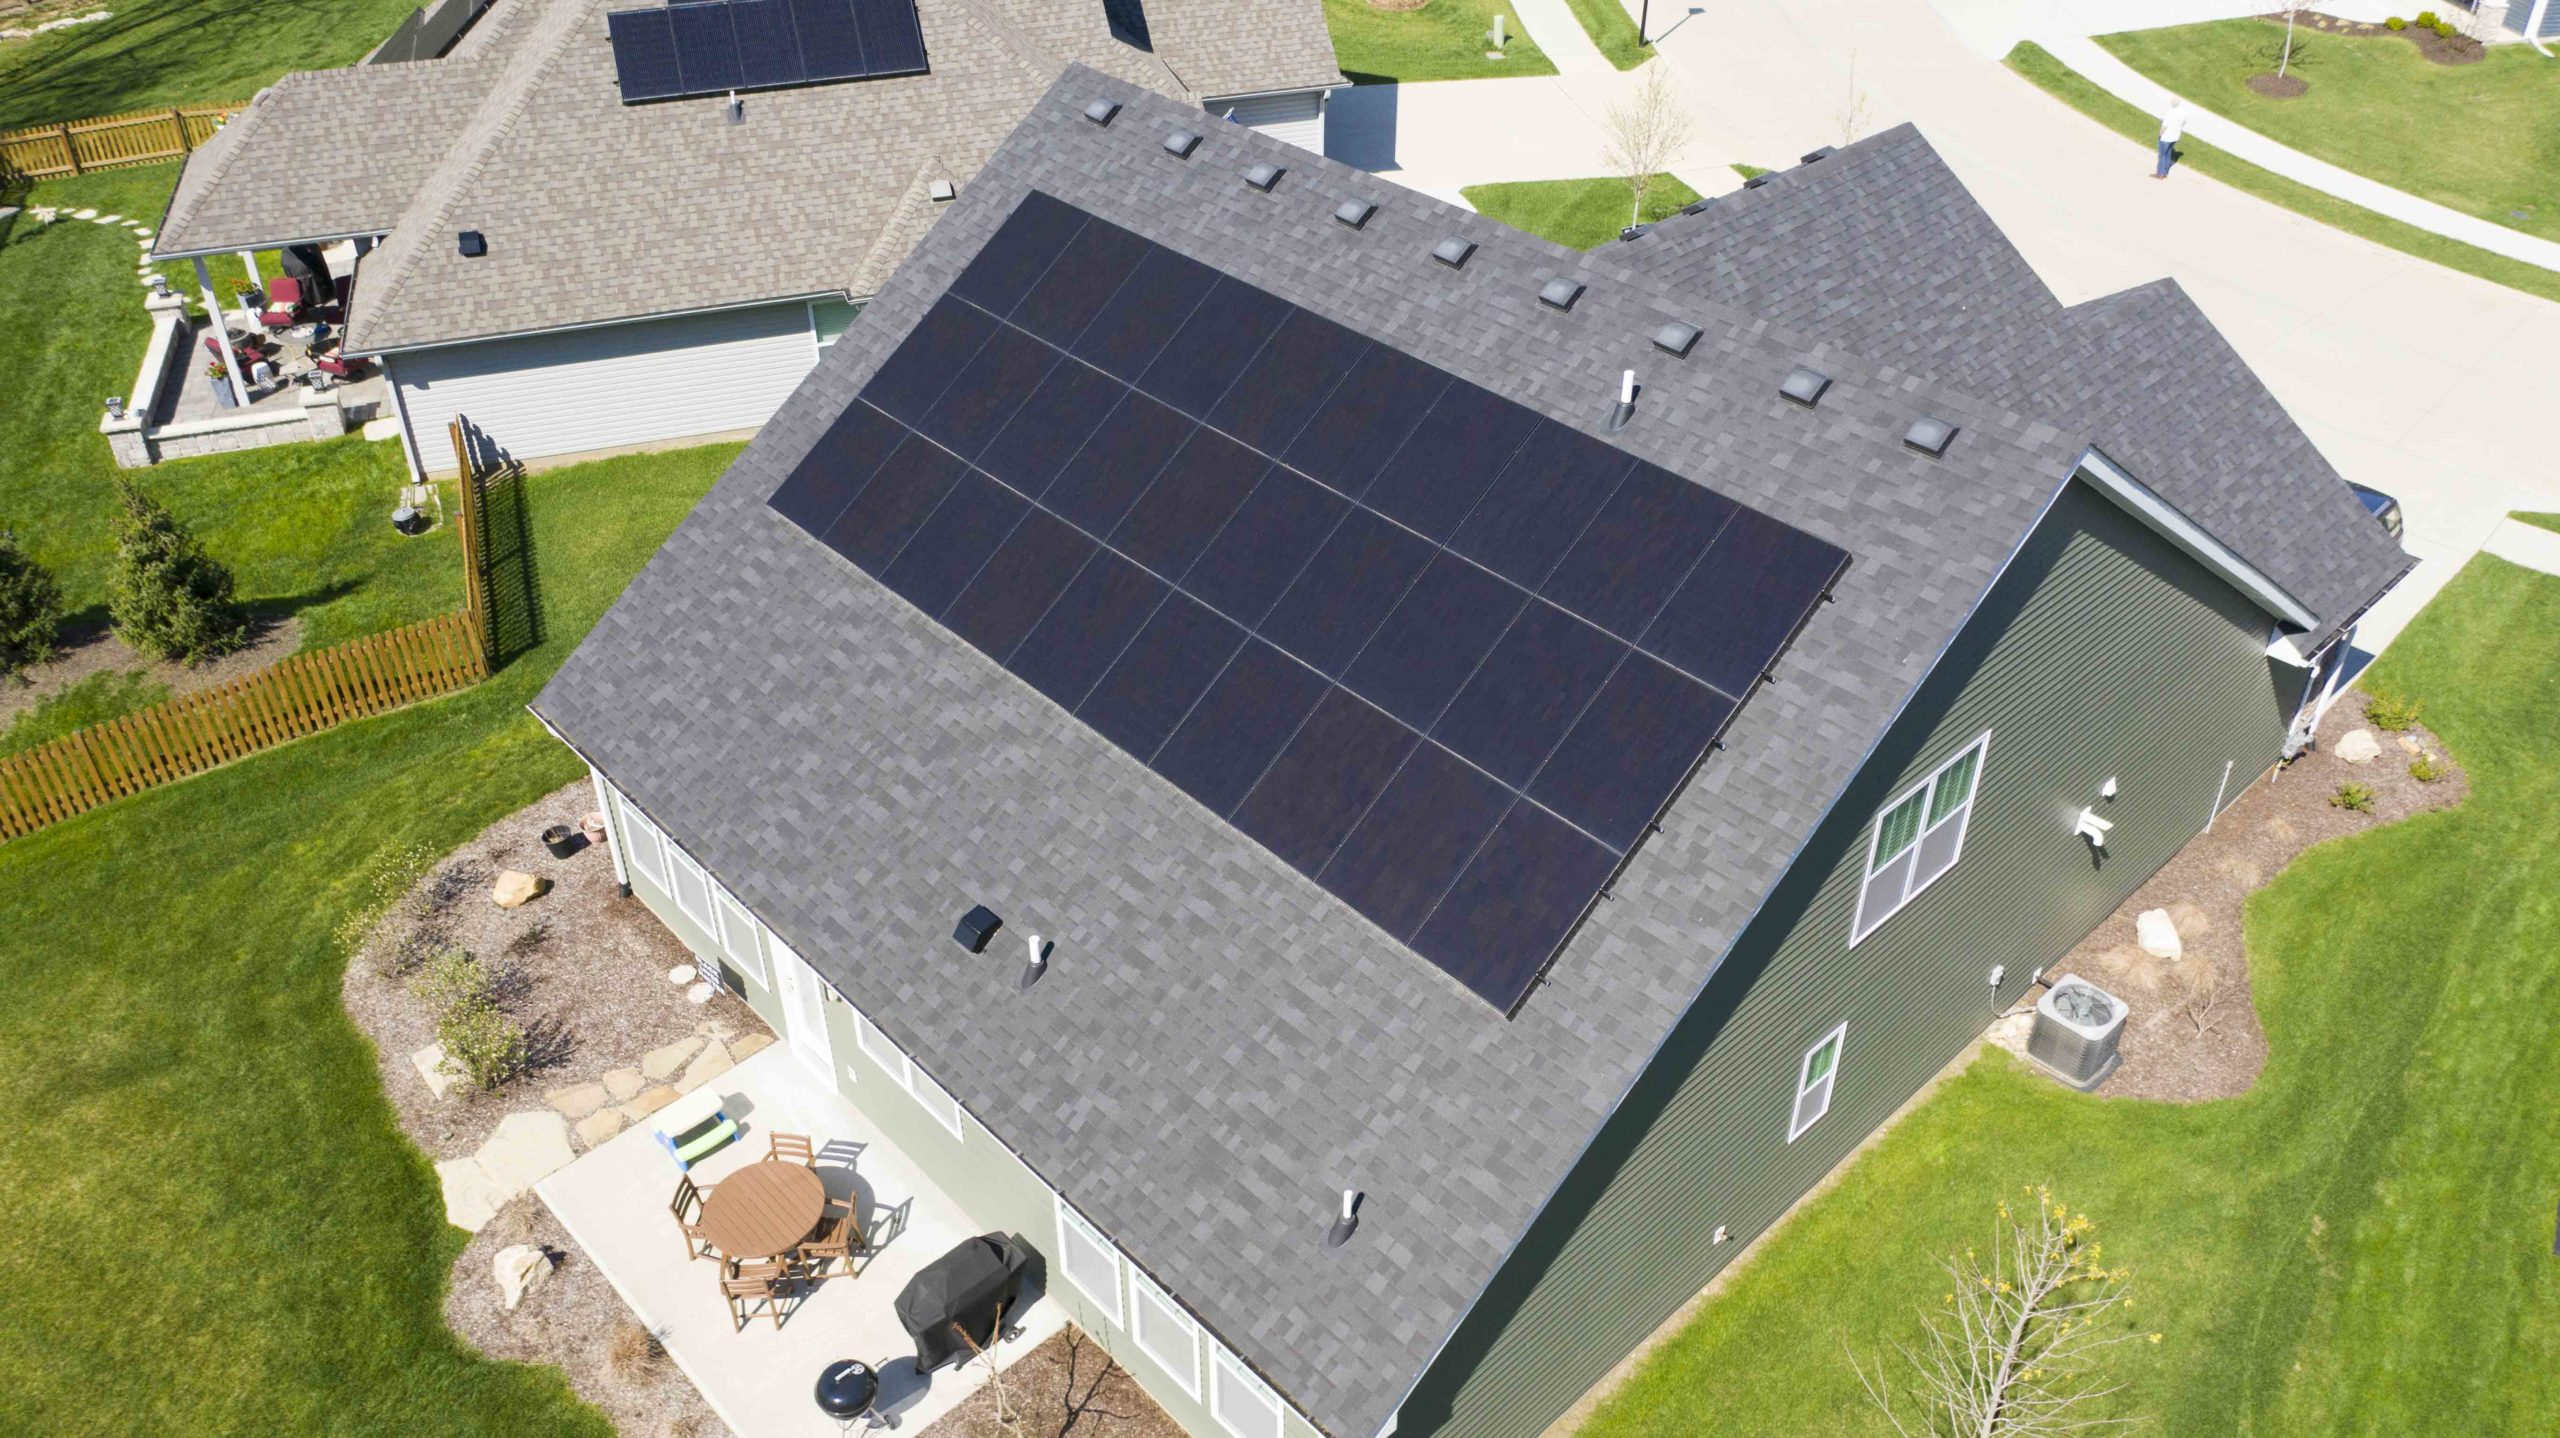 The rear of a Columbia, Missouri home has a perfectly lined up field of solar panels capturing the power of the sun.